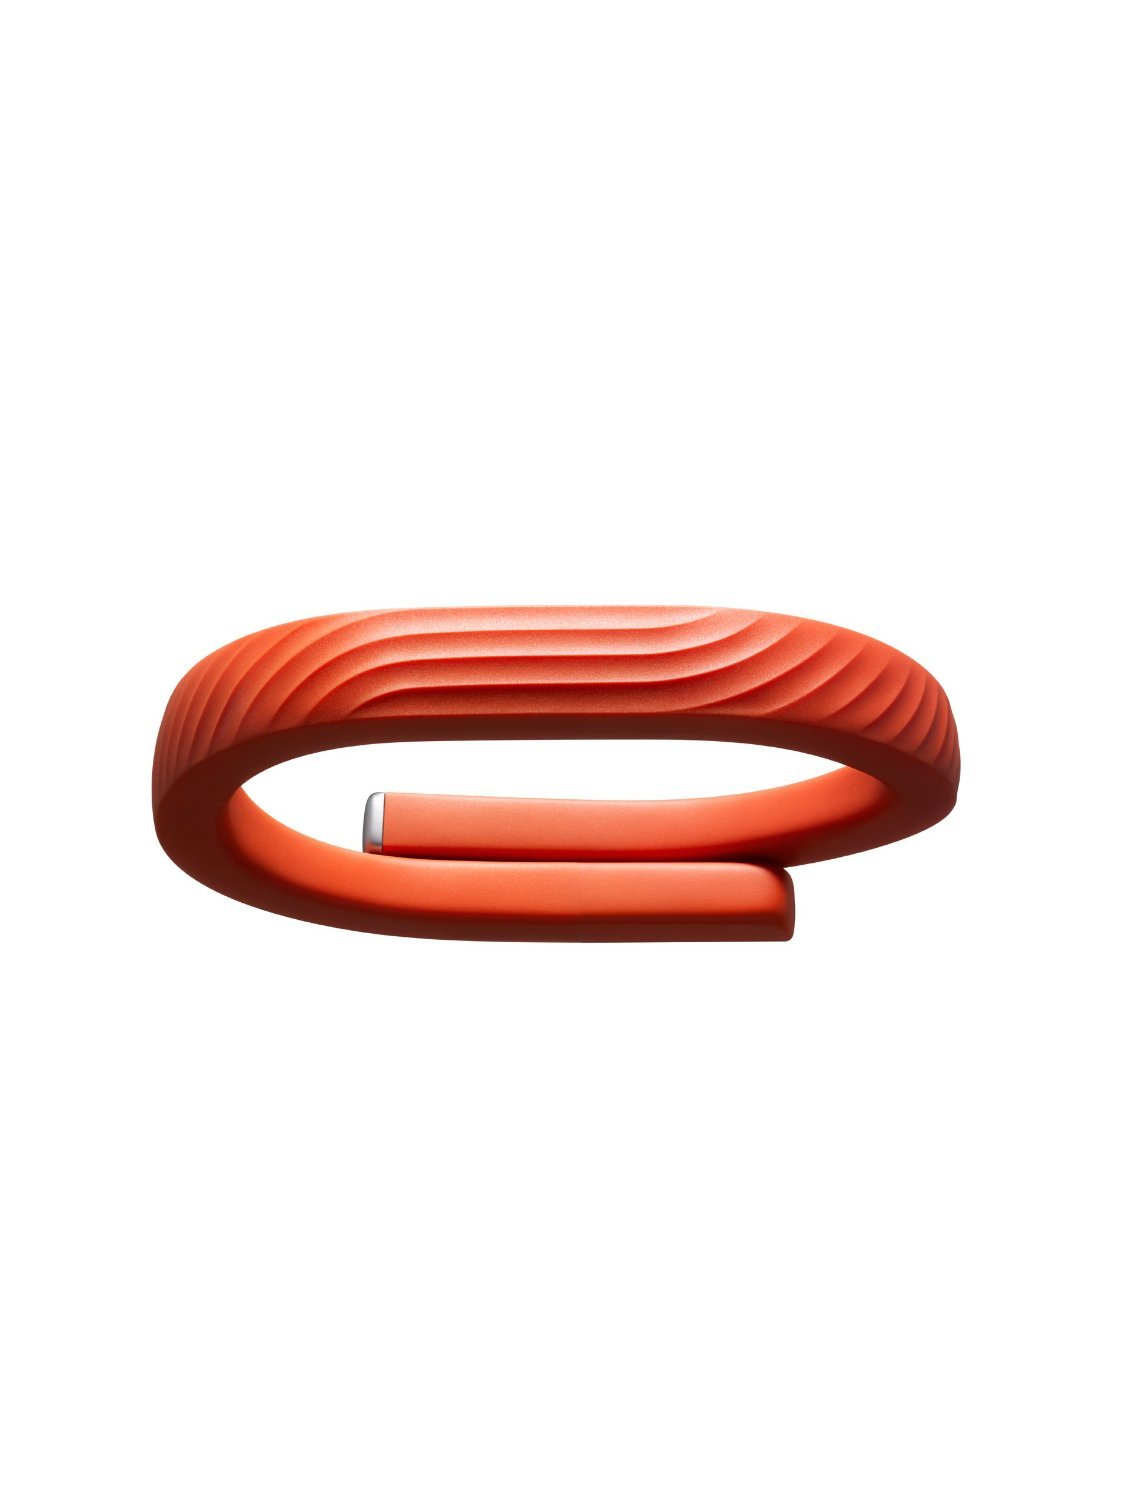 24 Jawbone Bluetooth Persimmon Refurbished Image 2